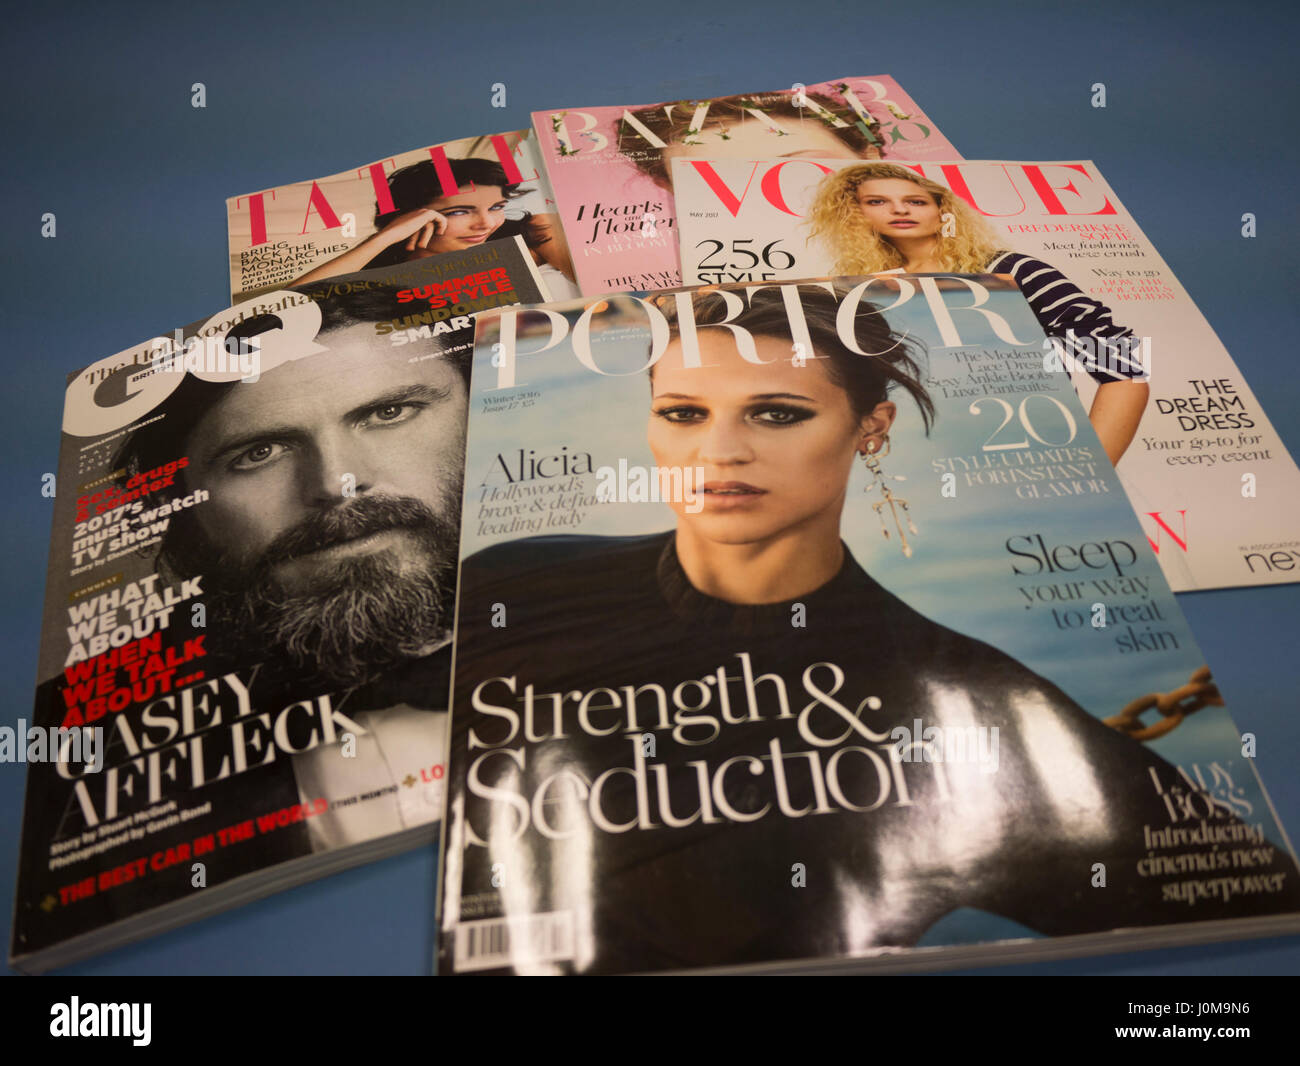 Luxury UK magazines, Porter, Vogue, GQ, Harpers Bazaar, Tatler, - Stock Image